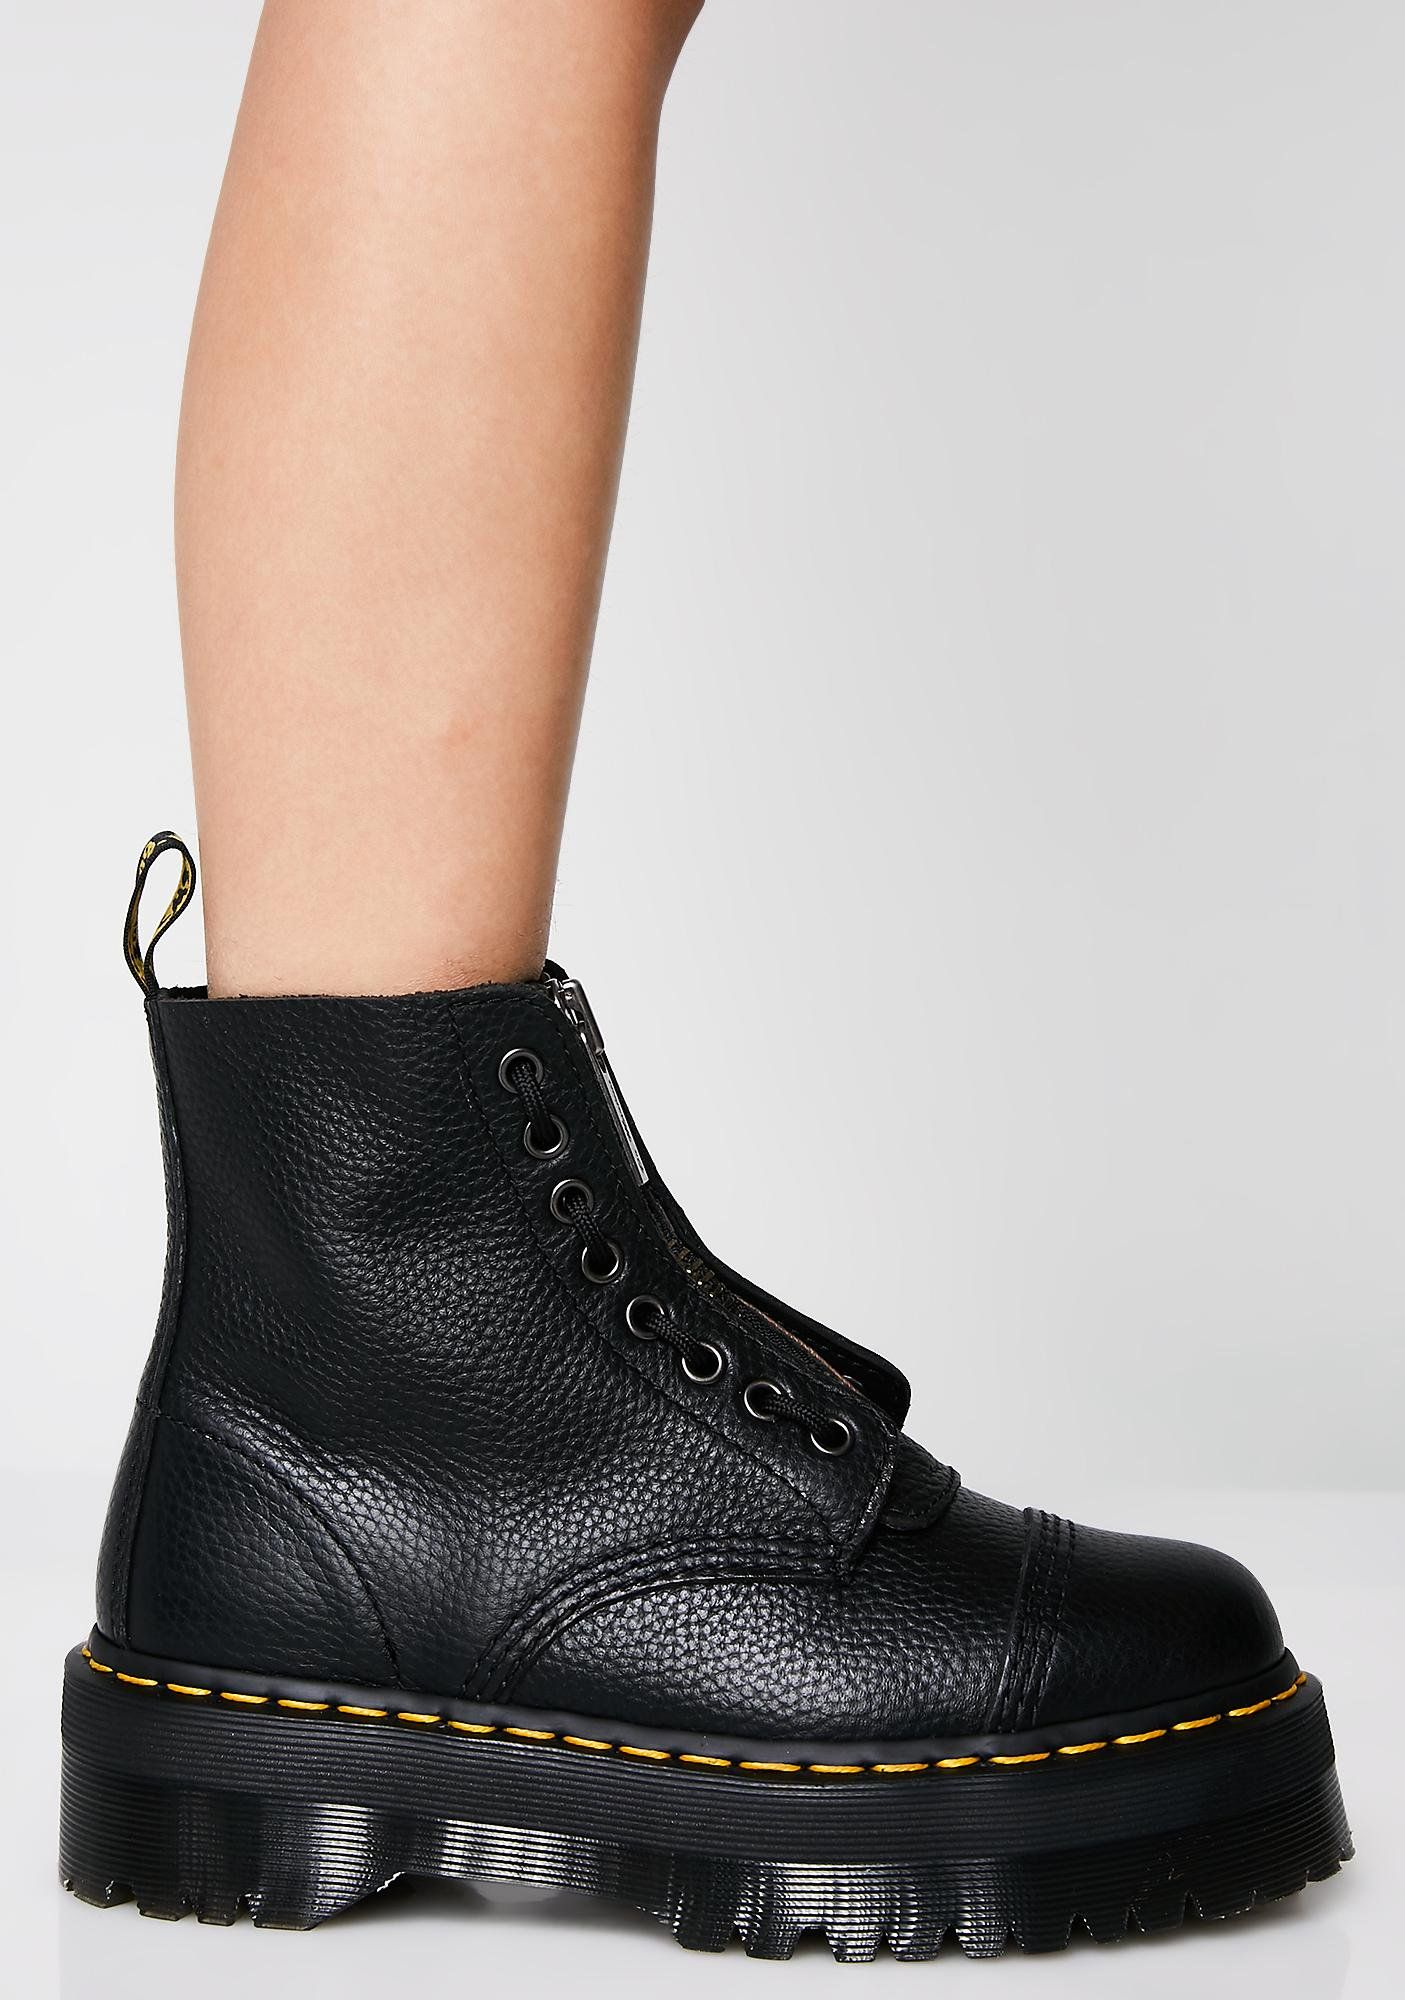 Dr. Martens Sinclair 8-Eye Jungle Boots will have ya stompin  out your  enemies. These sikk black combat boots have thikk platform soles and a  front zipper ... 4b2460e7358e